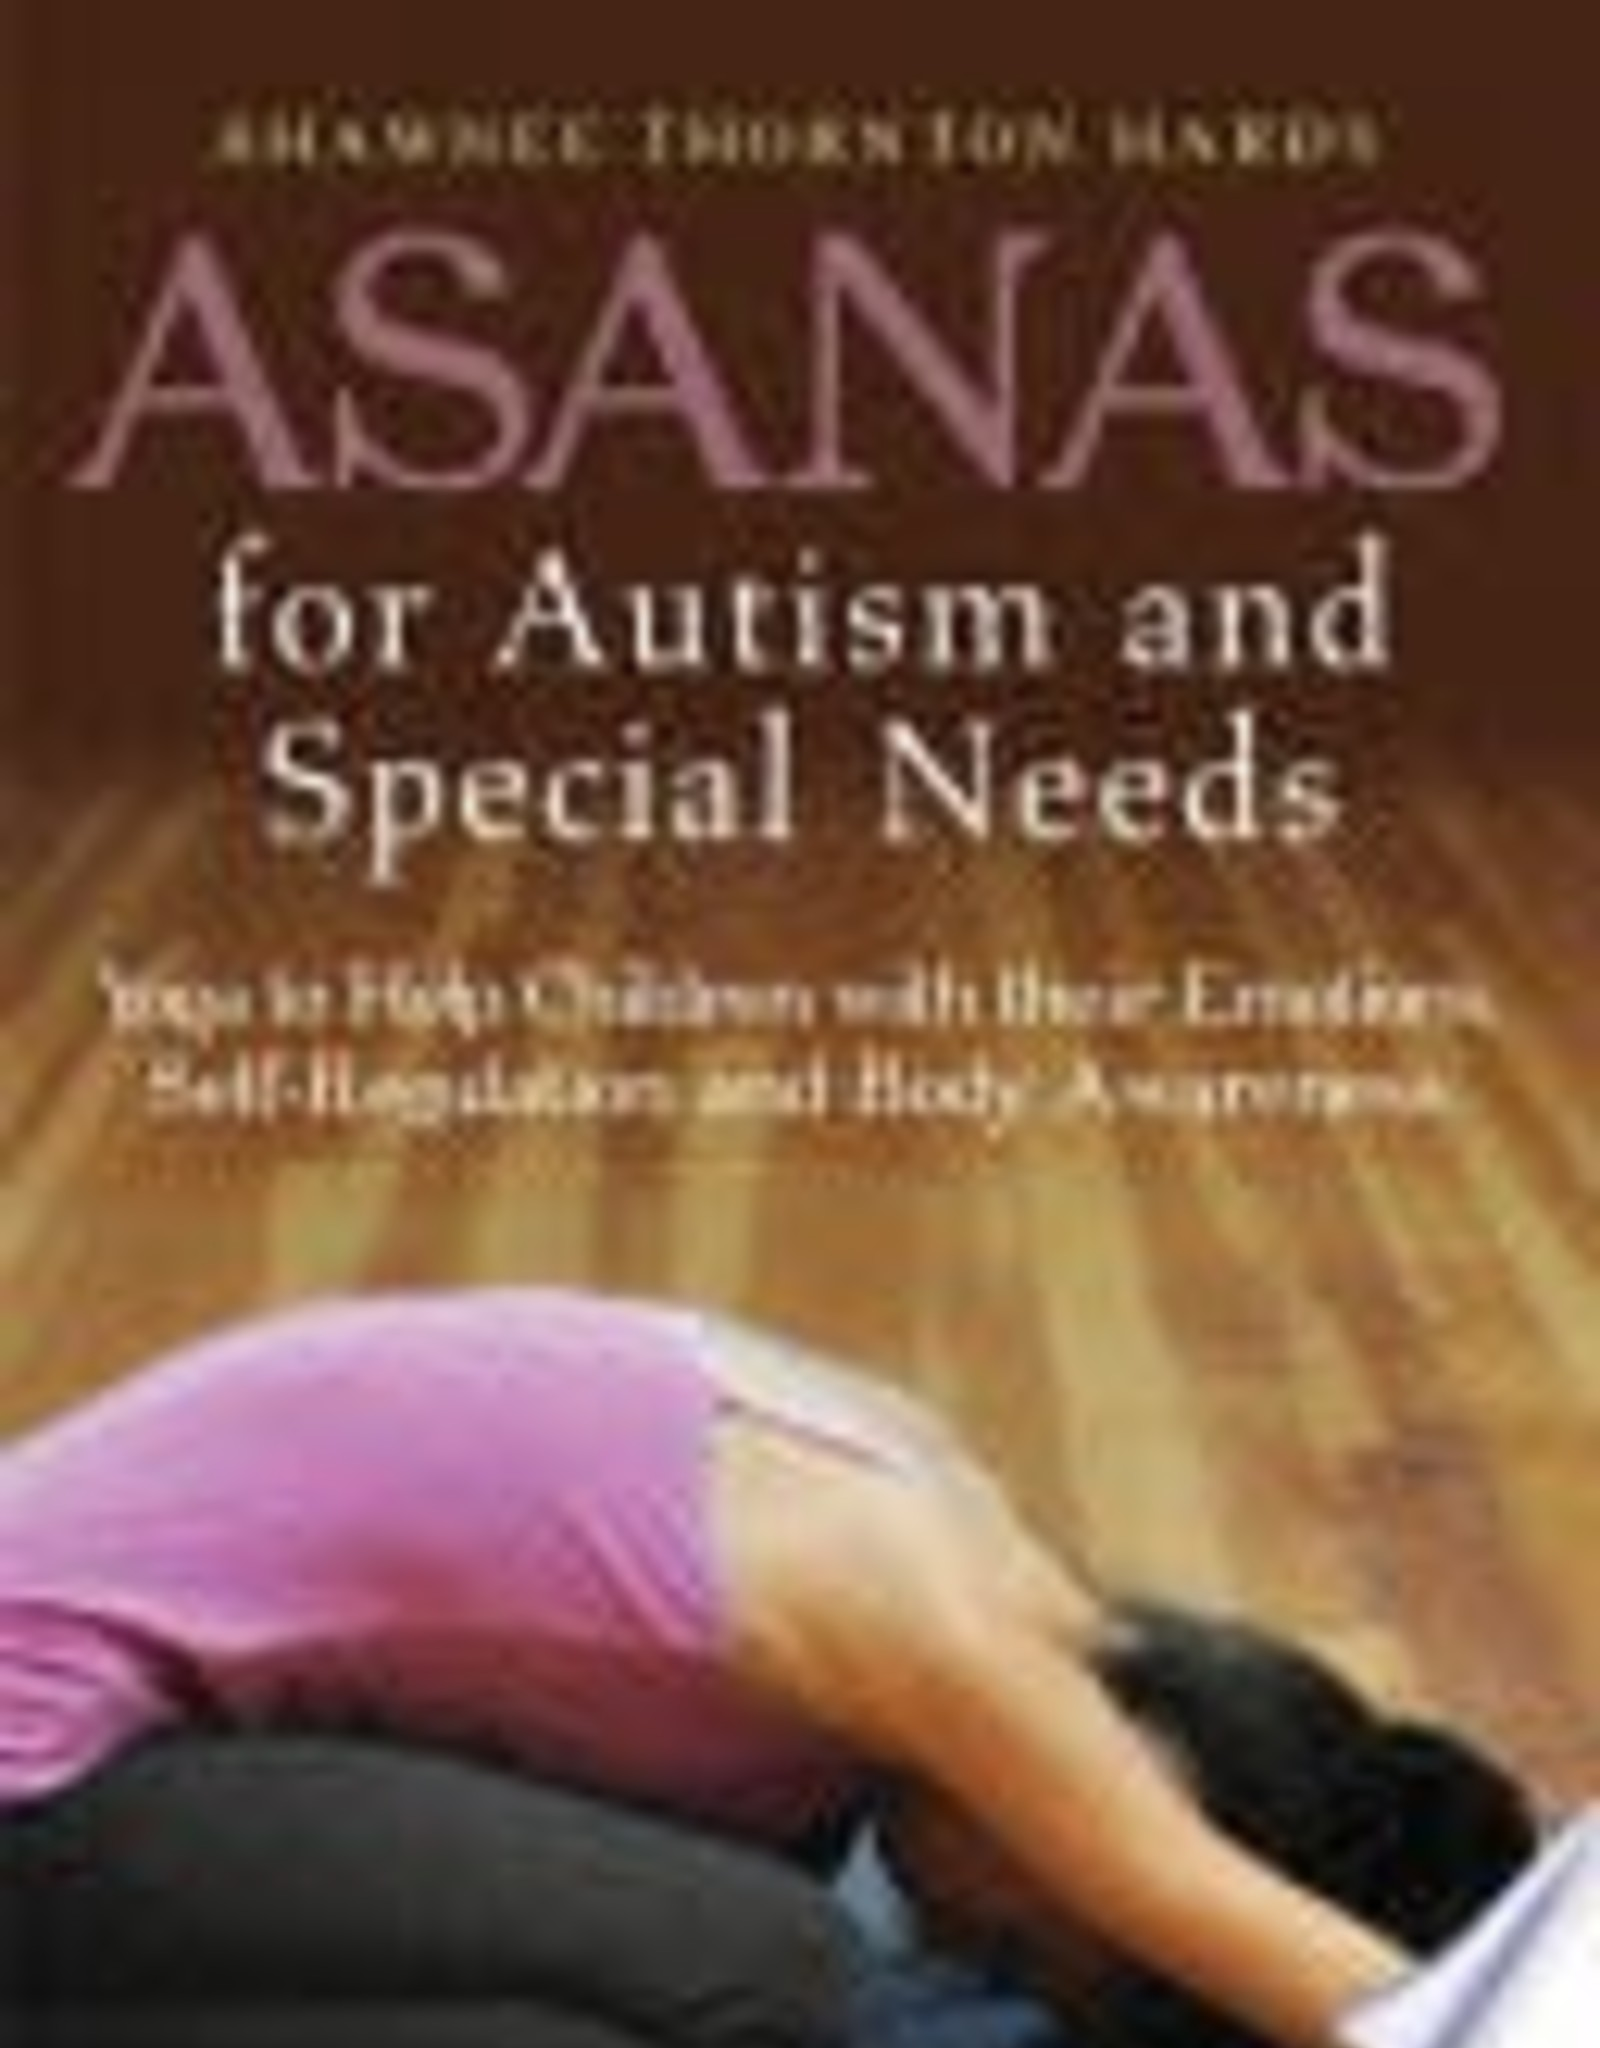 Asanas for Autism and Special Needs: Yoga to Help Children with their Emotions, Self-Regulation and Body Awareness